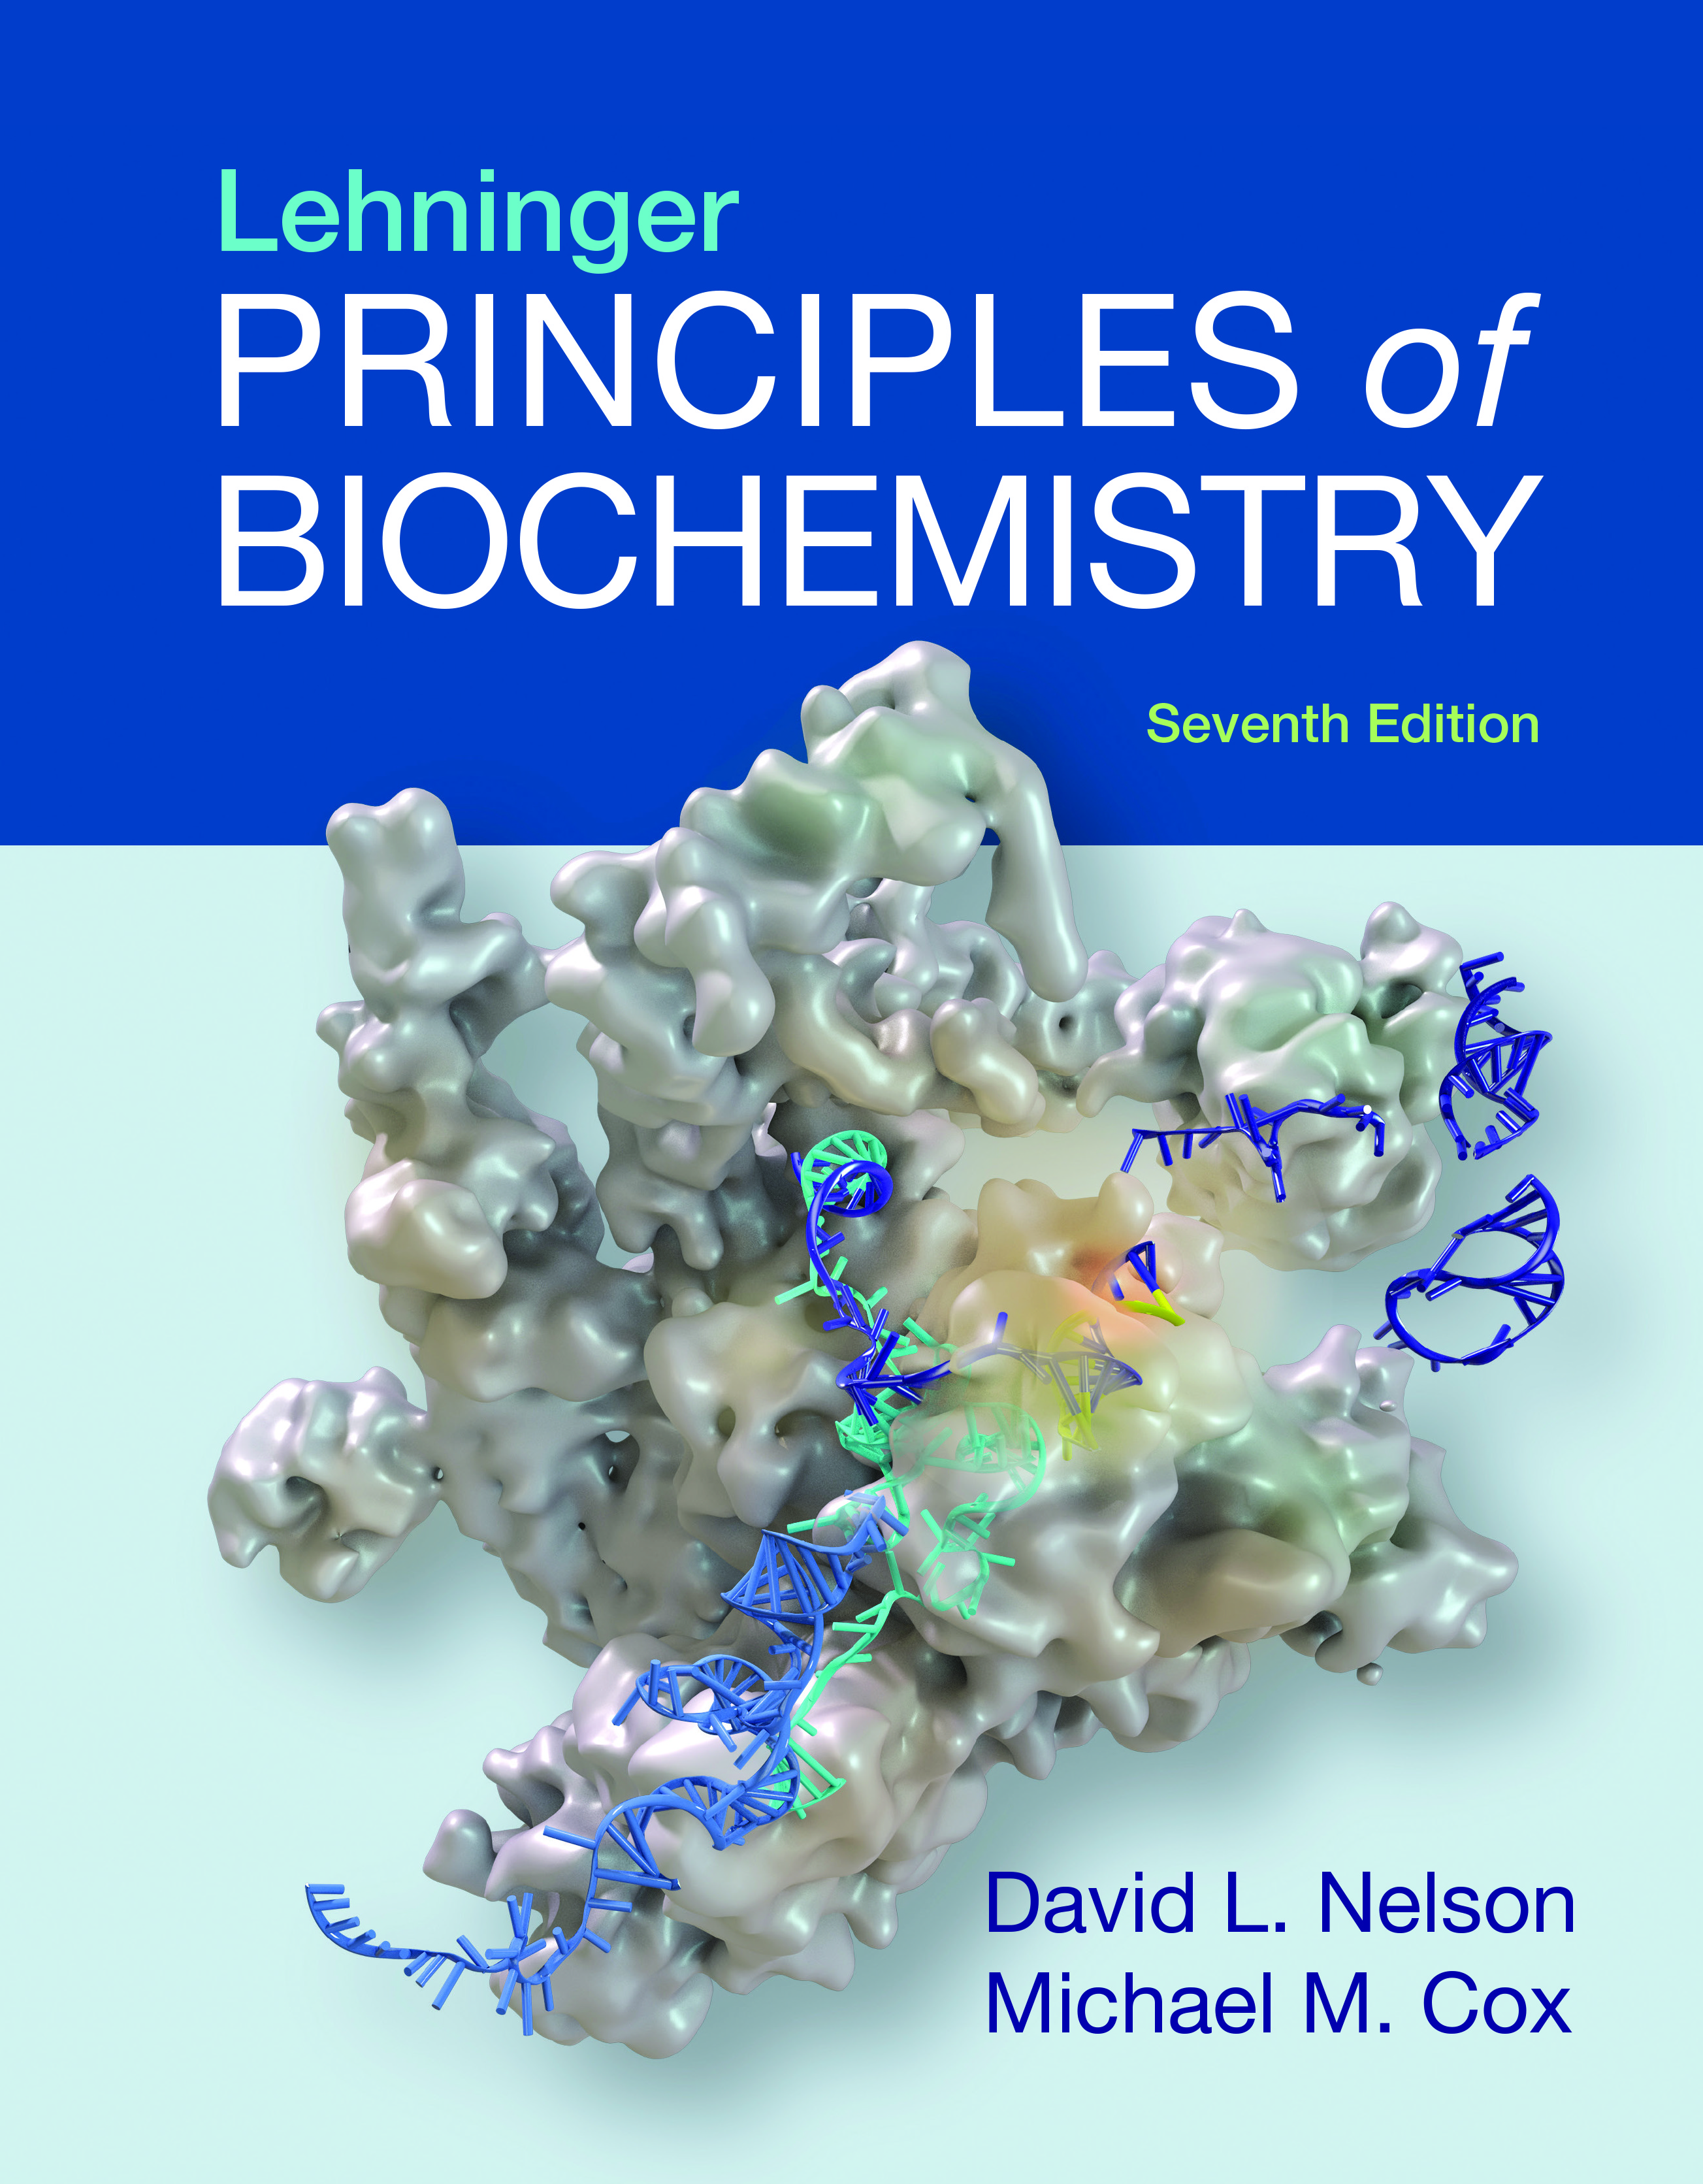 lehninger principles of biochemistry 7th ed us ed 洋書 南江堂